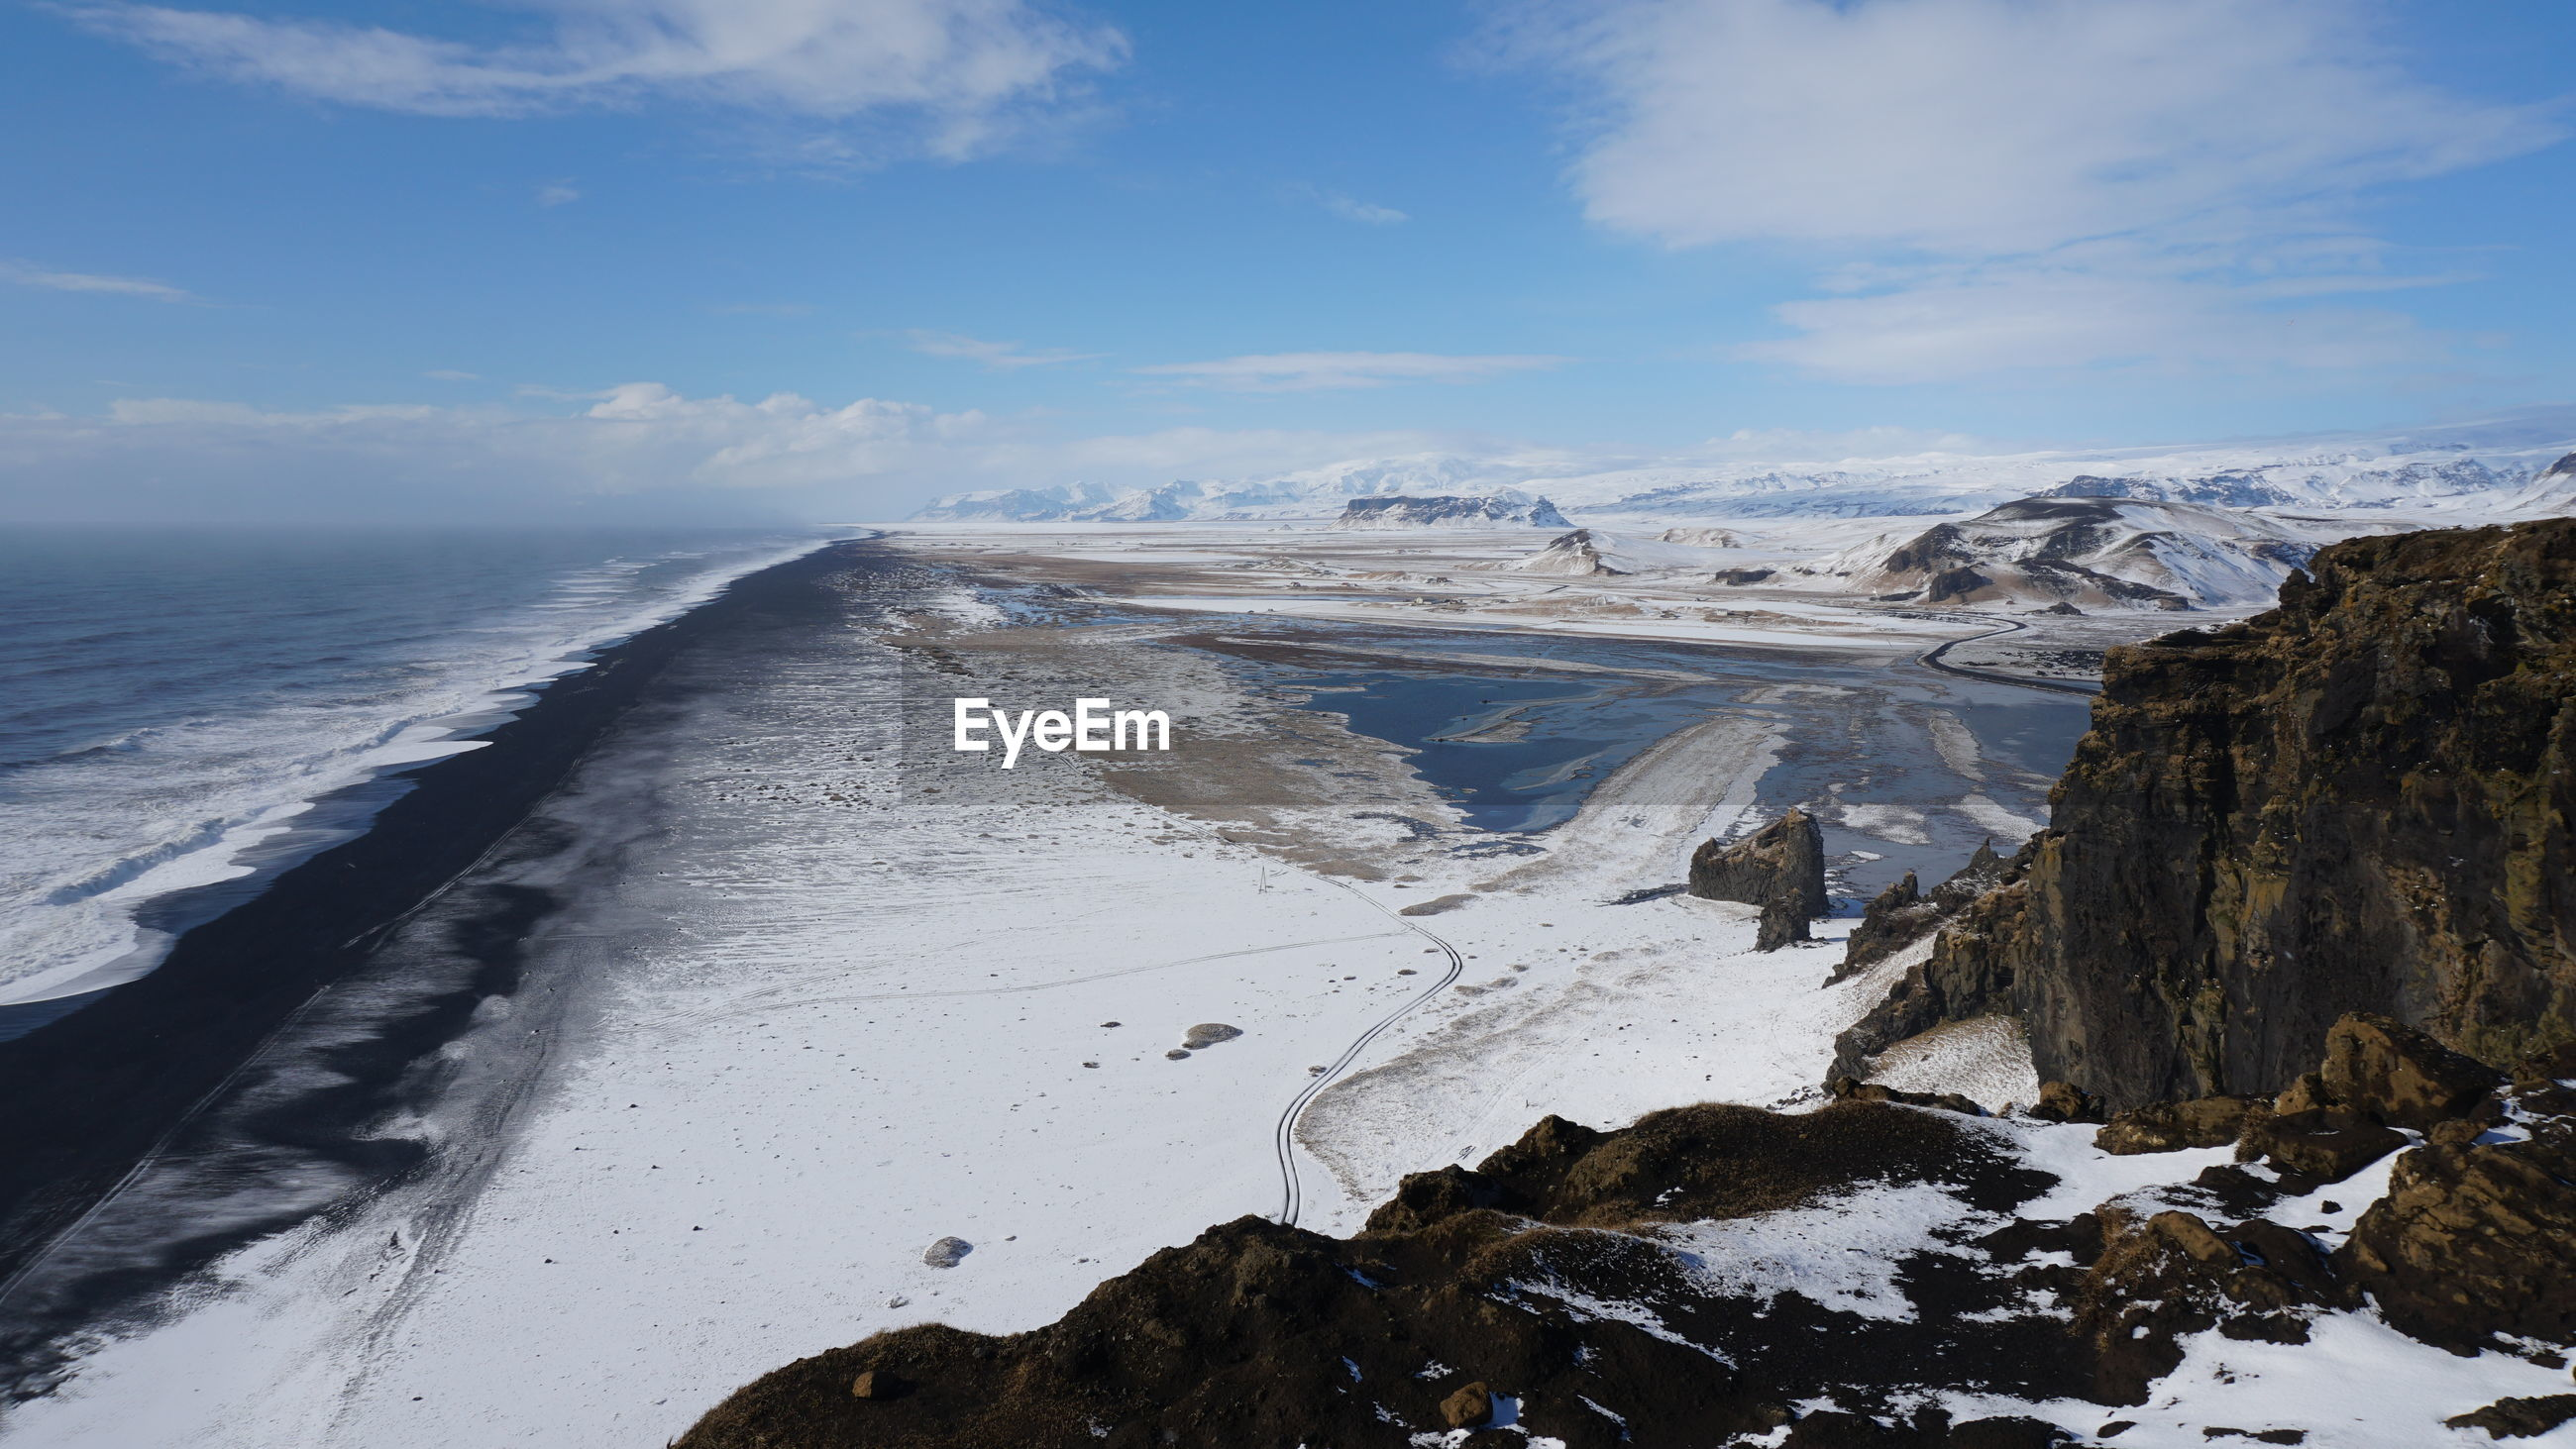 SCENIC VIEW OF SEA BY SNOWCAPPED MOUNTAIN AGAINST SKY